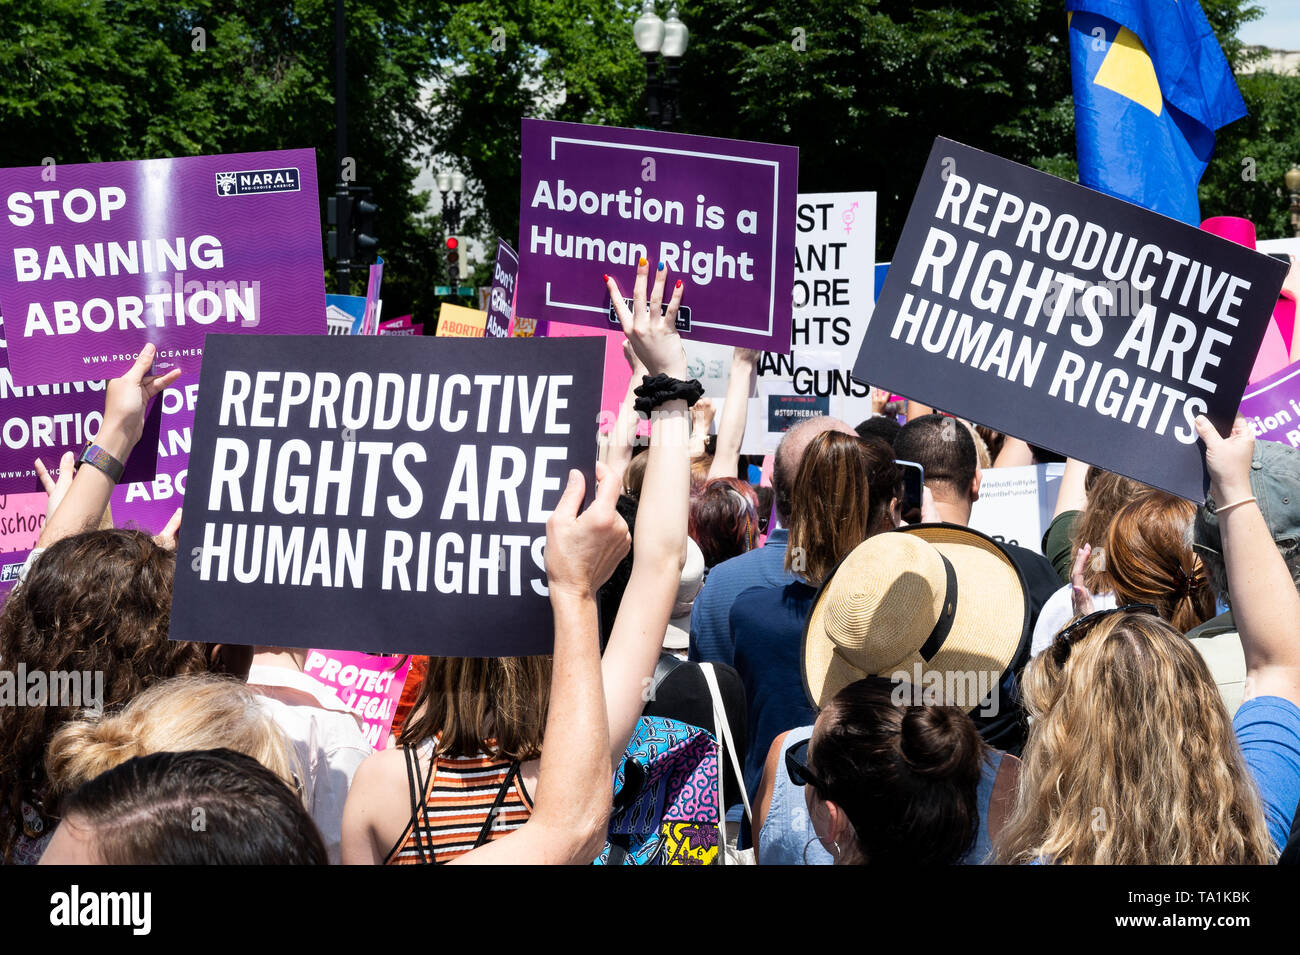 stop abortion bans And Love Have 4 Things In Common